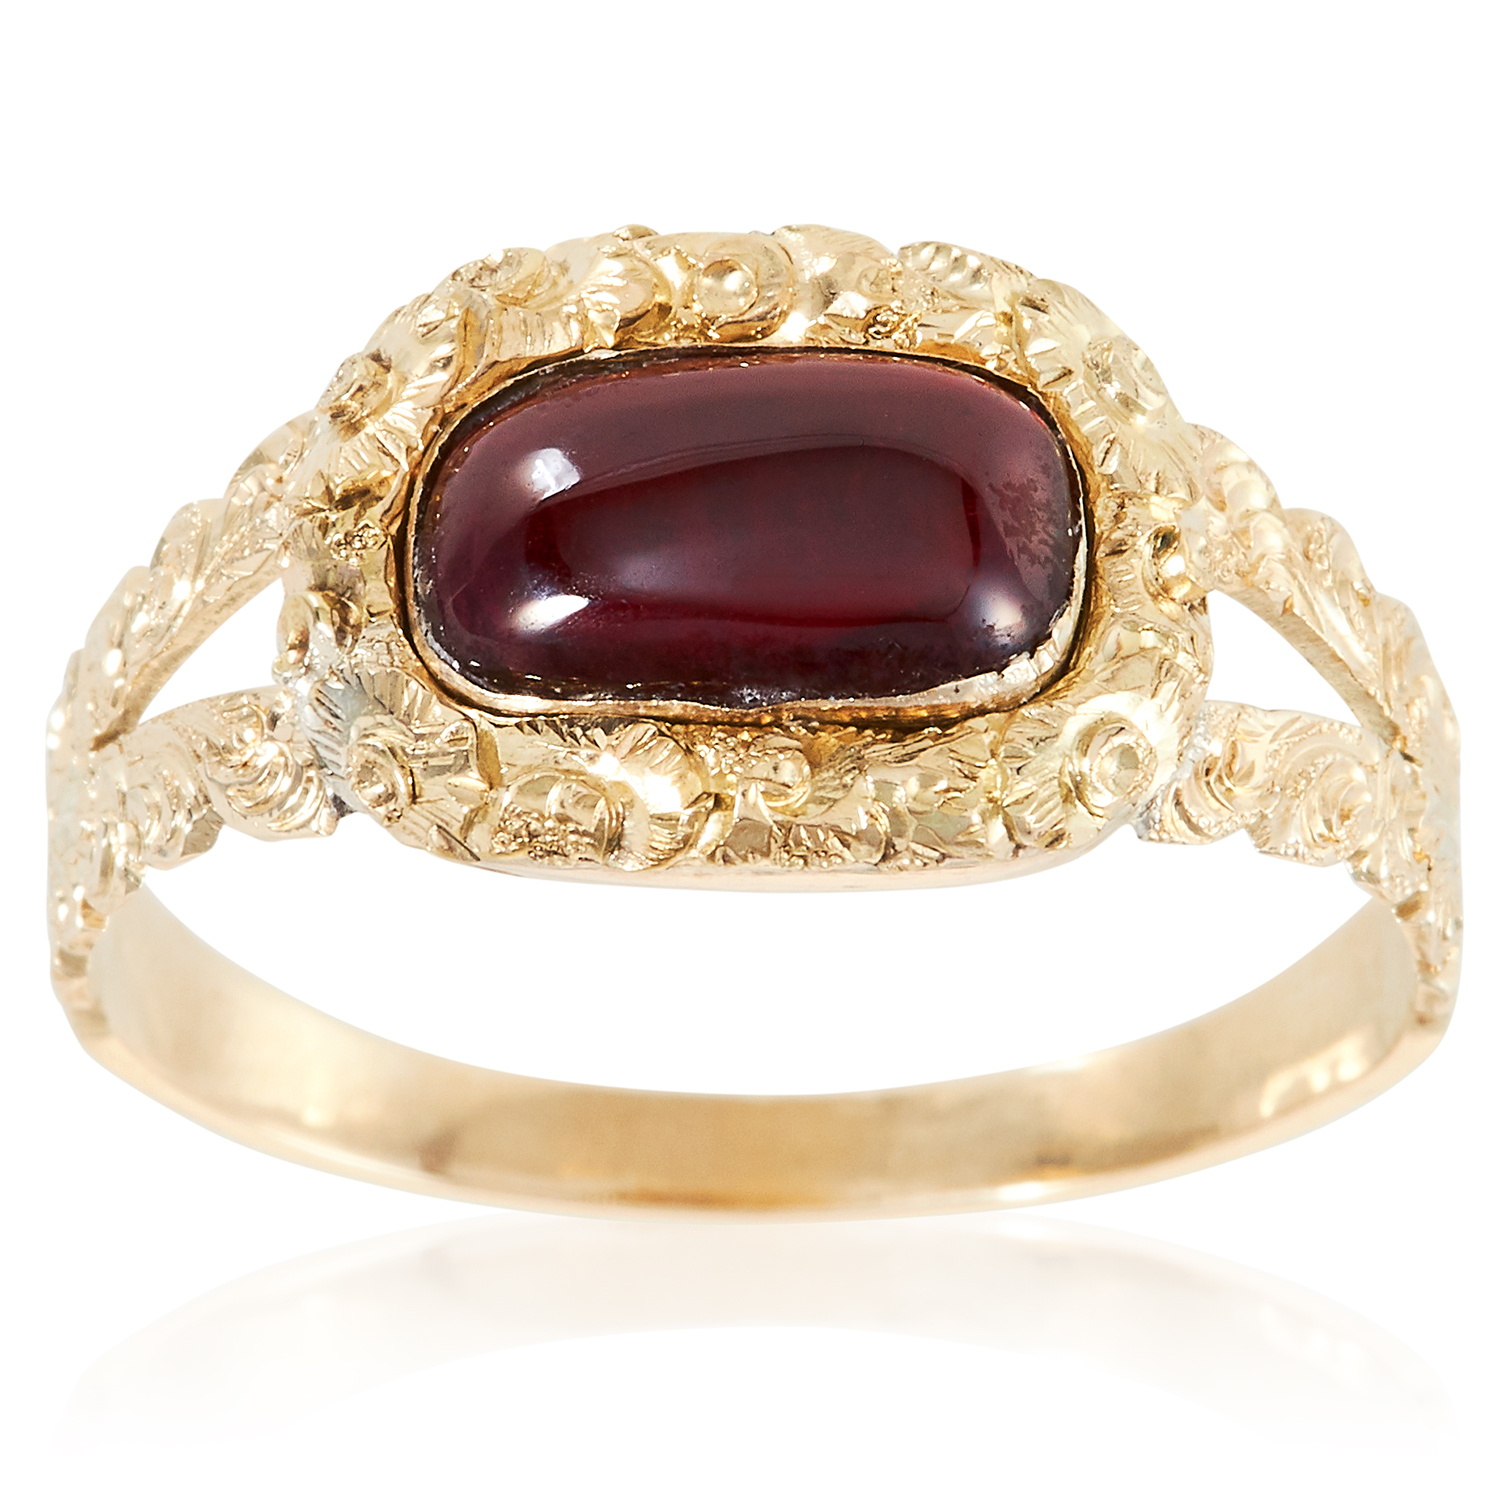 Los 35 - AN ANTIQUE GEORGIAN GARNET RING, EARLY 19TH CENTURY in high carat yellow gold, the oval cabochon